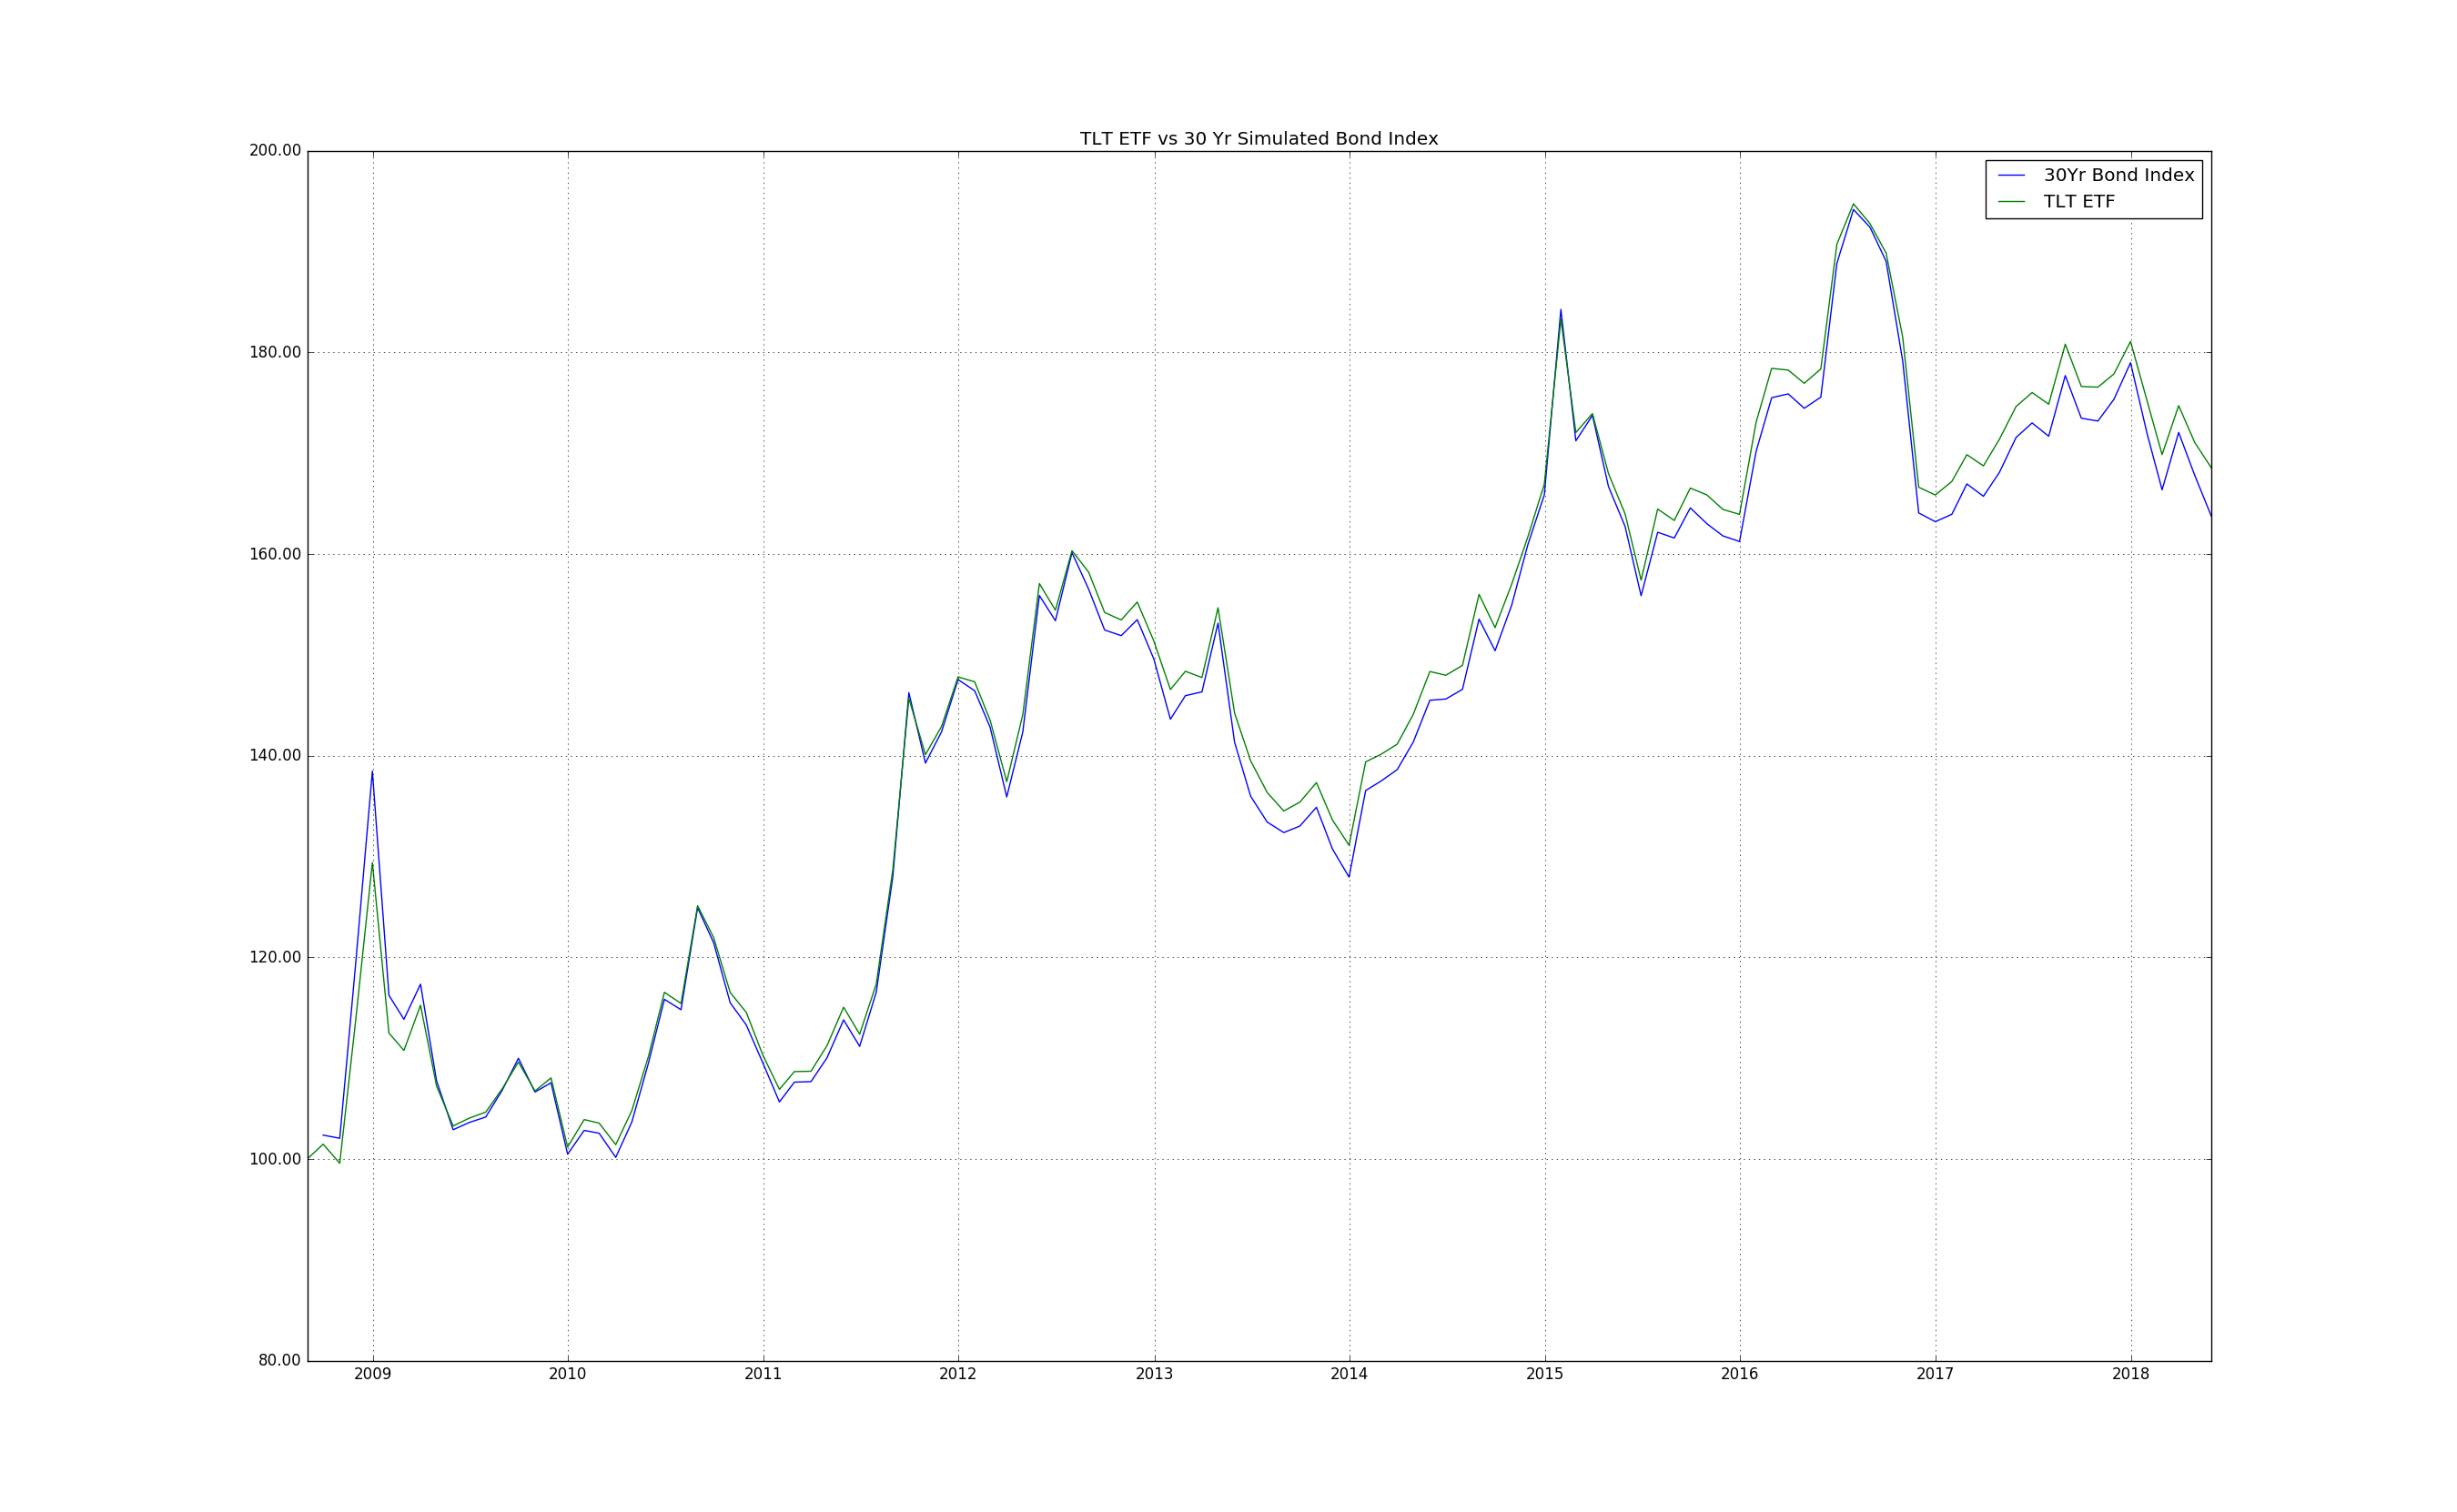 Simulated 30Yr Bond Index vs TLT ETF